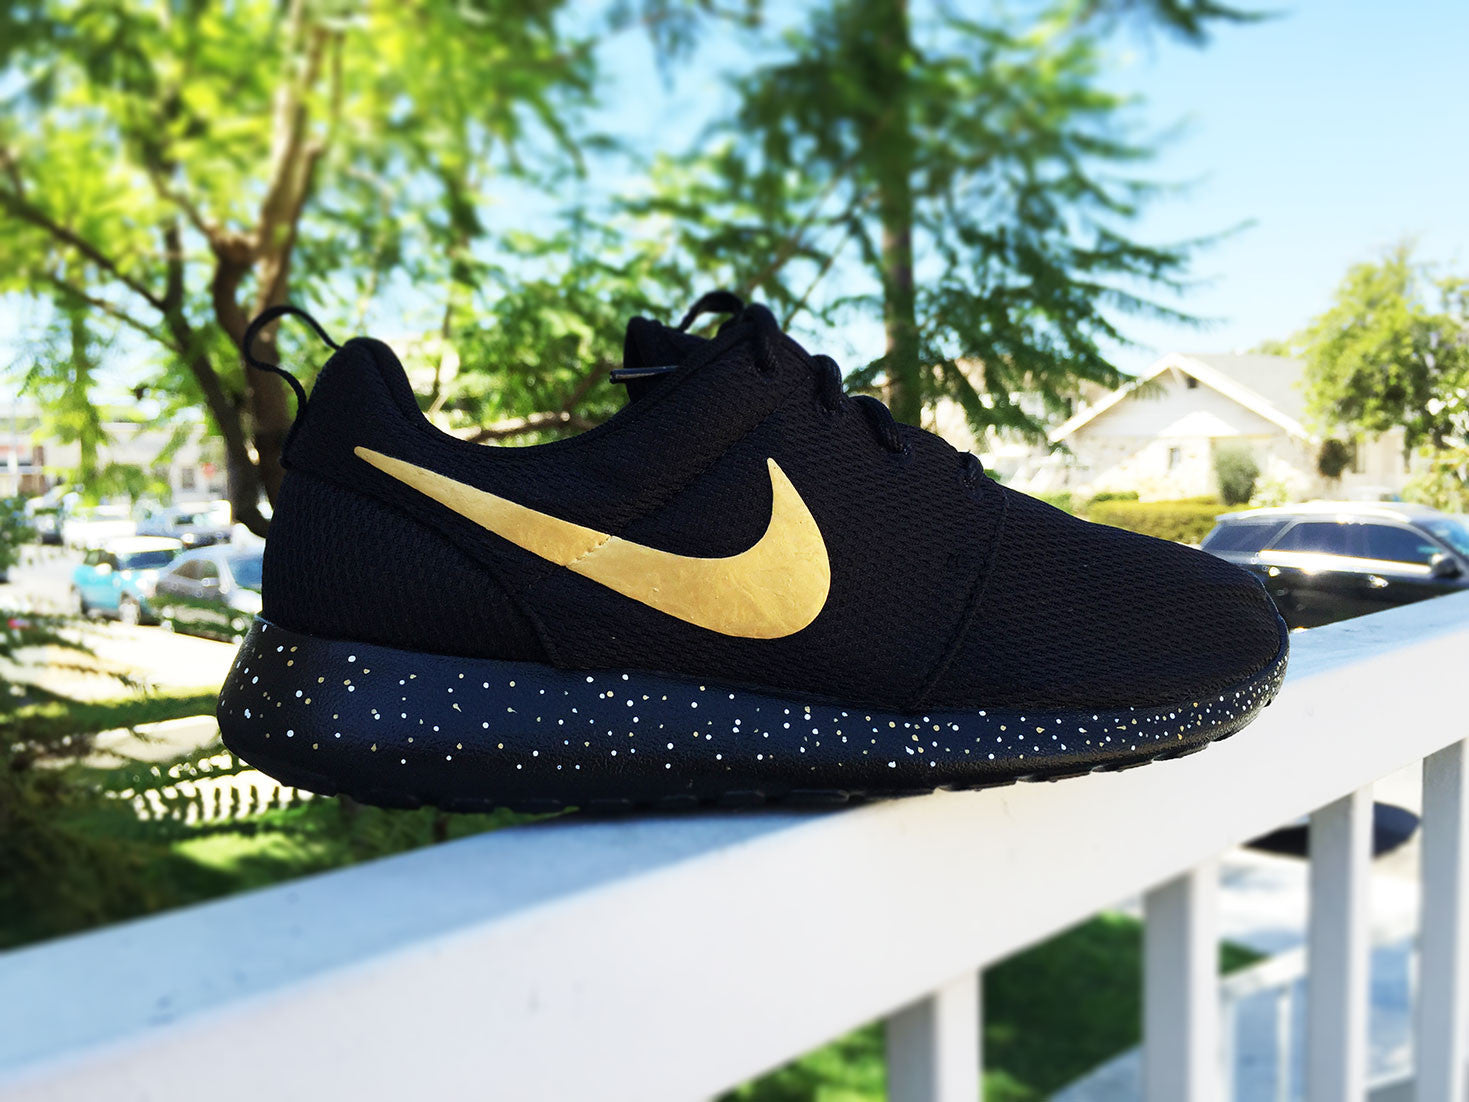 dculop Custom Nike Roshe Run Gold splatter design, Gold and White